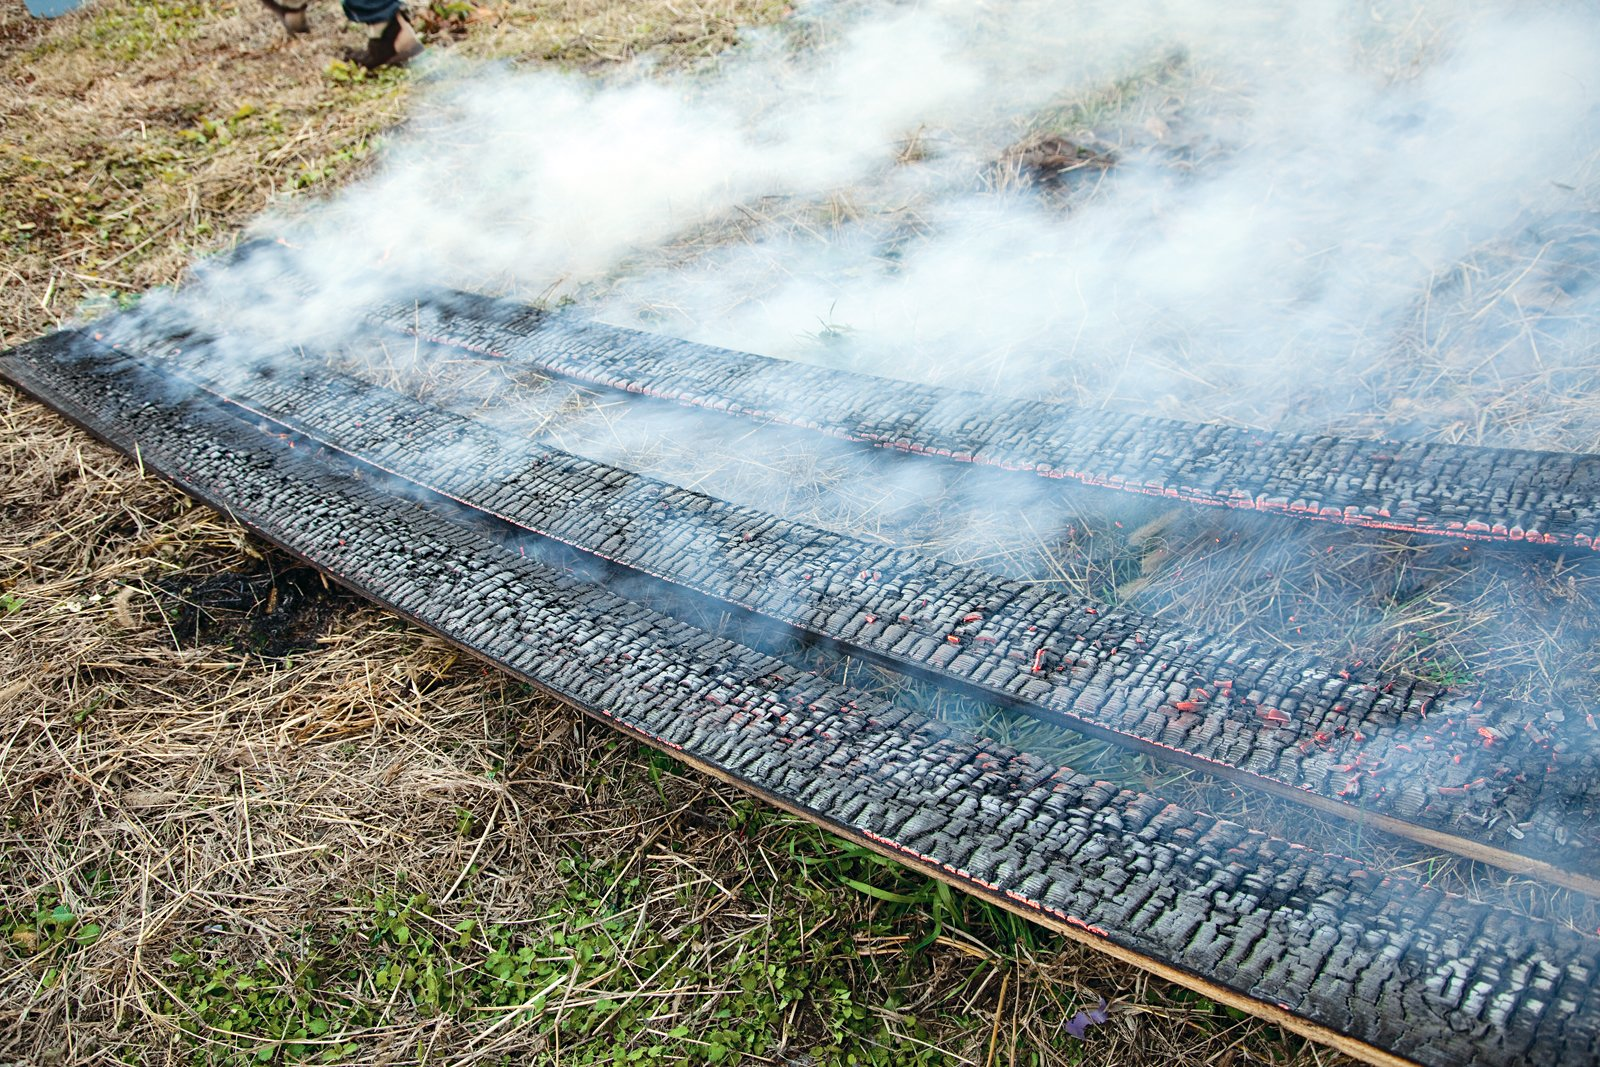 After the flames have been put out, the boards continue to crackle and smoke. Charring the boards properly requires a delicate balance between just enough burning, but not too much.  Photo 19 of 23 in Terunobu Fujimori